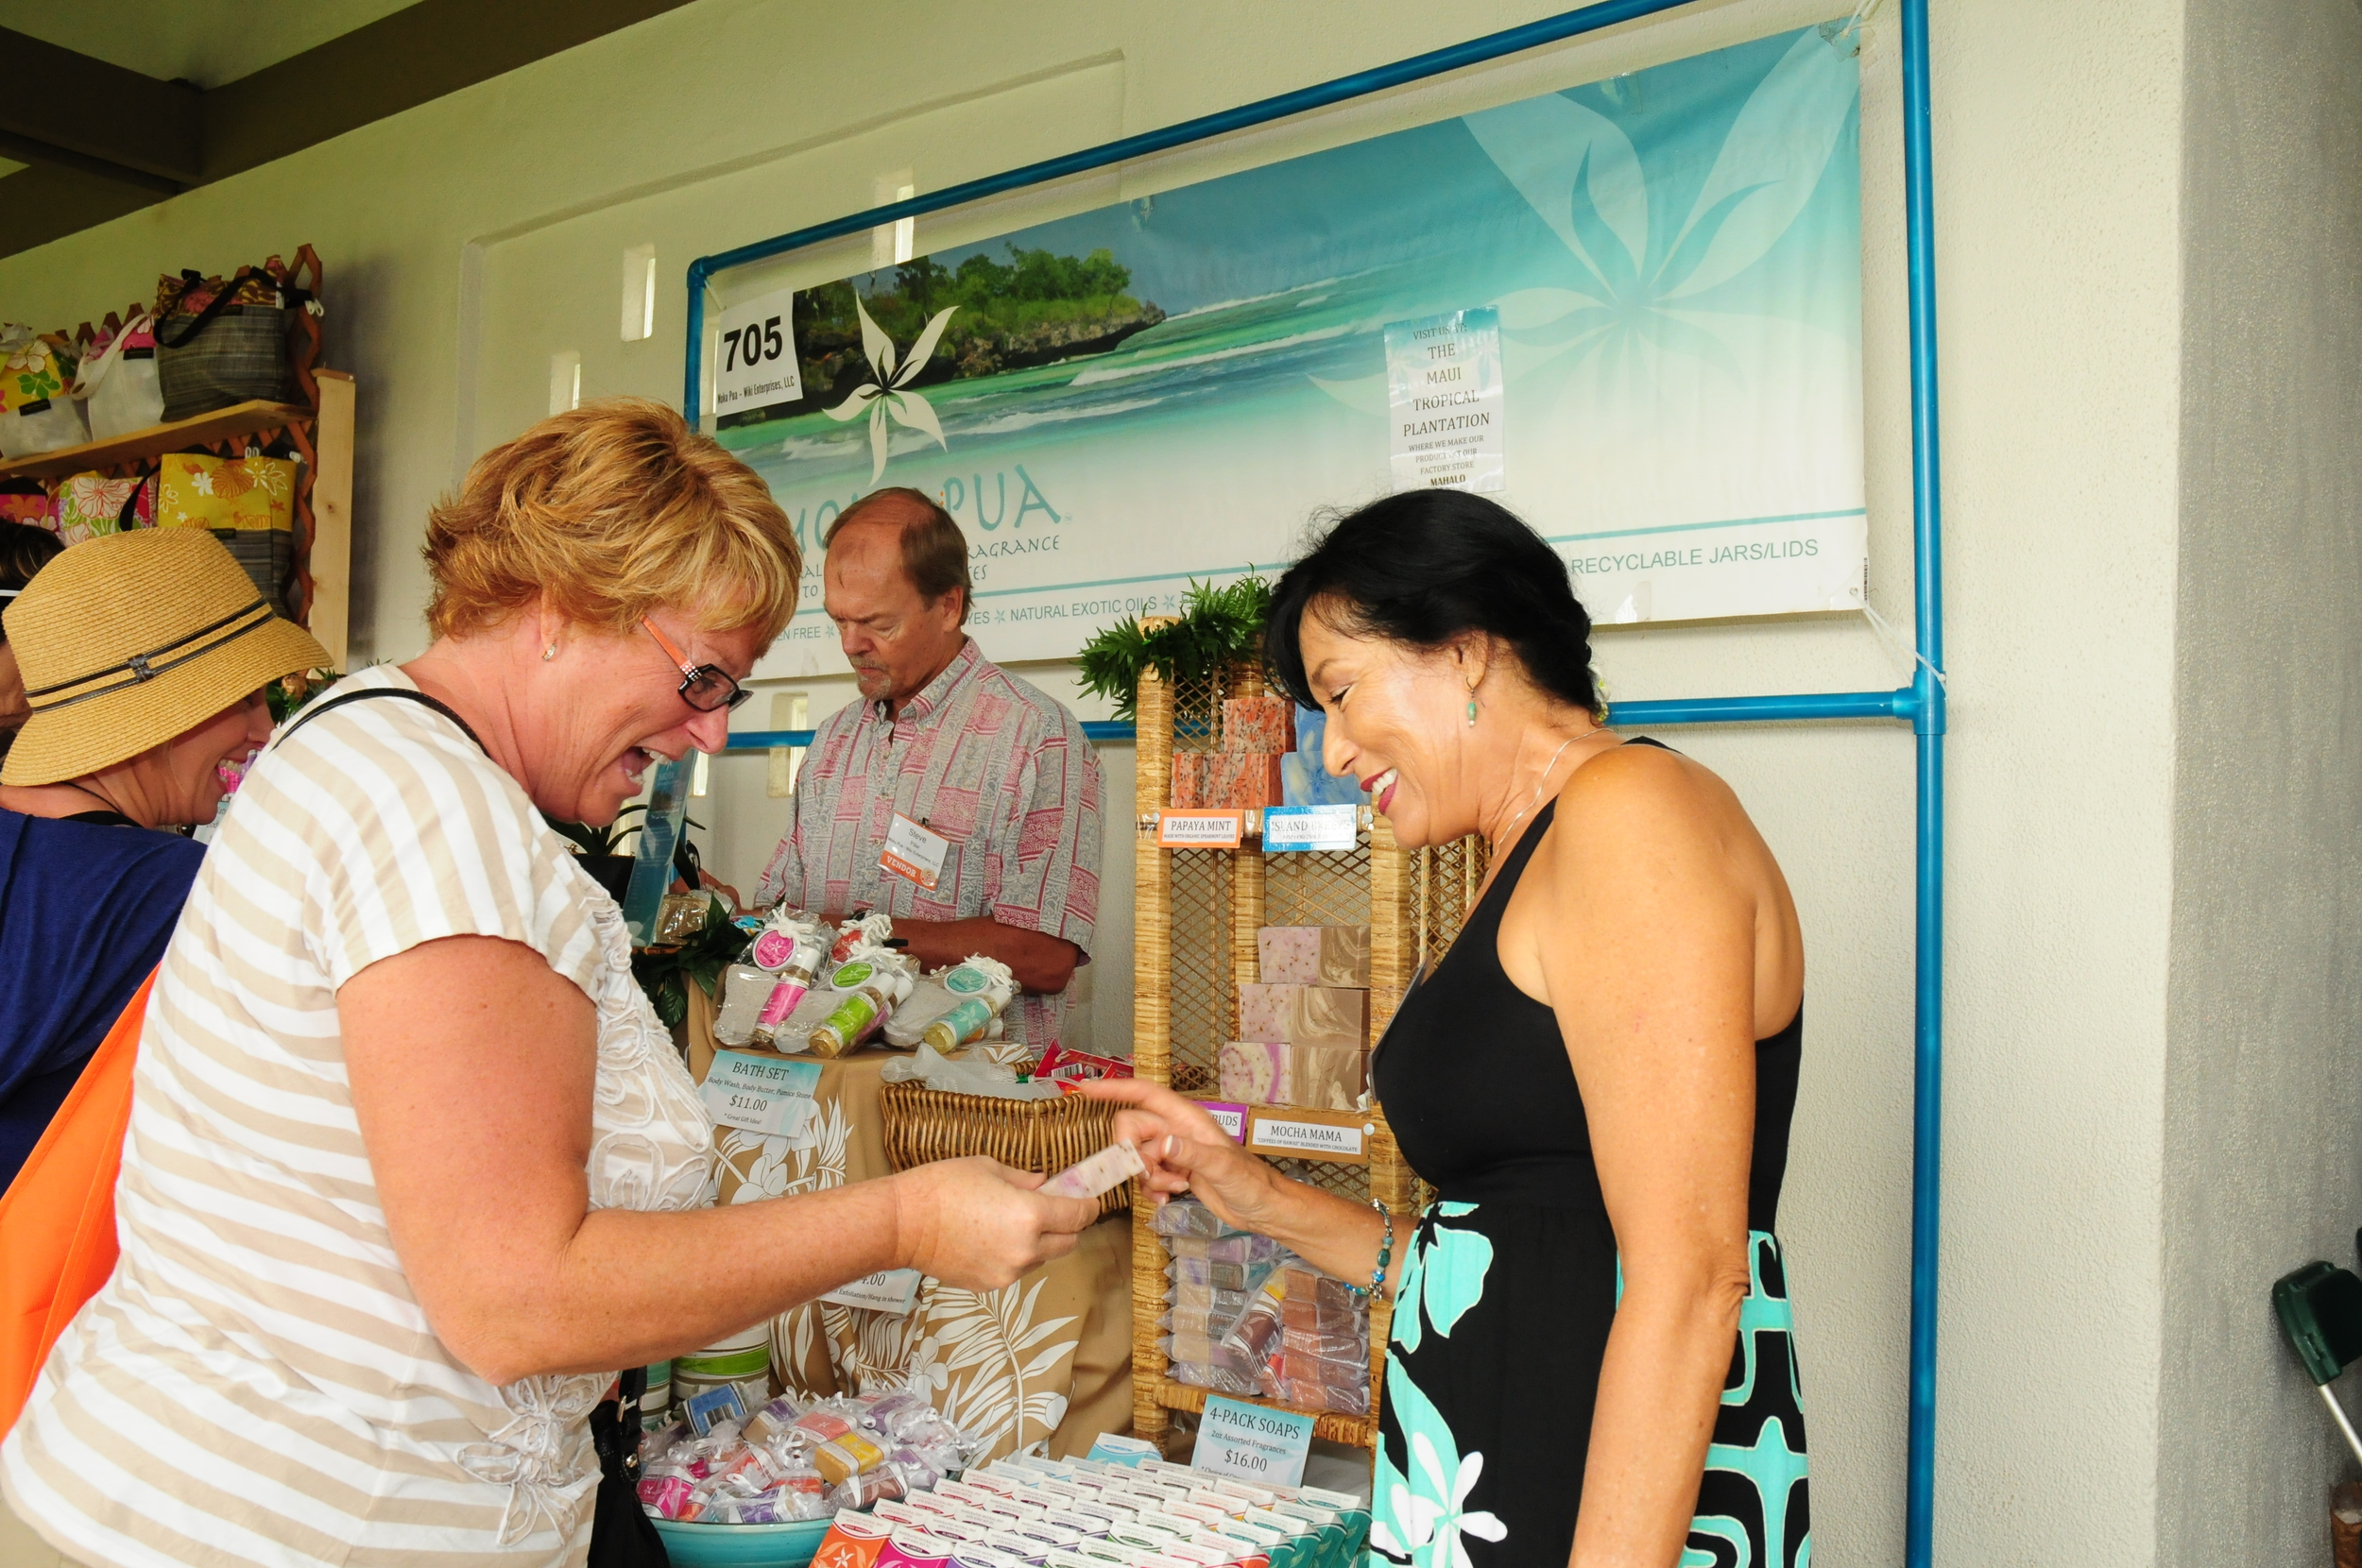 """Lori Hintzsche of Phoenix, Ariz., looks over a product made by Vicki Pillar of Moku Pua. Pillar said business was """"exploding,"""" and that she and her husband, Steve, picked up five new wholesale accounts and a steady stream of local customers and Maui visitors."""